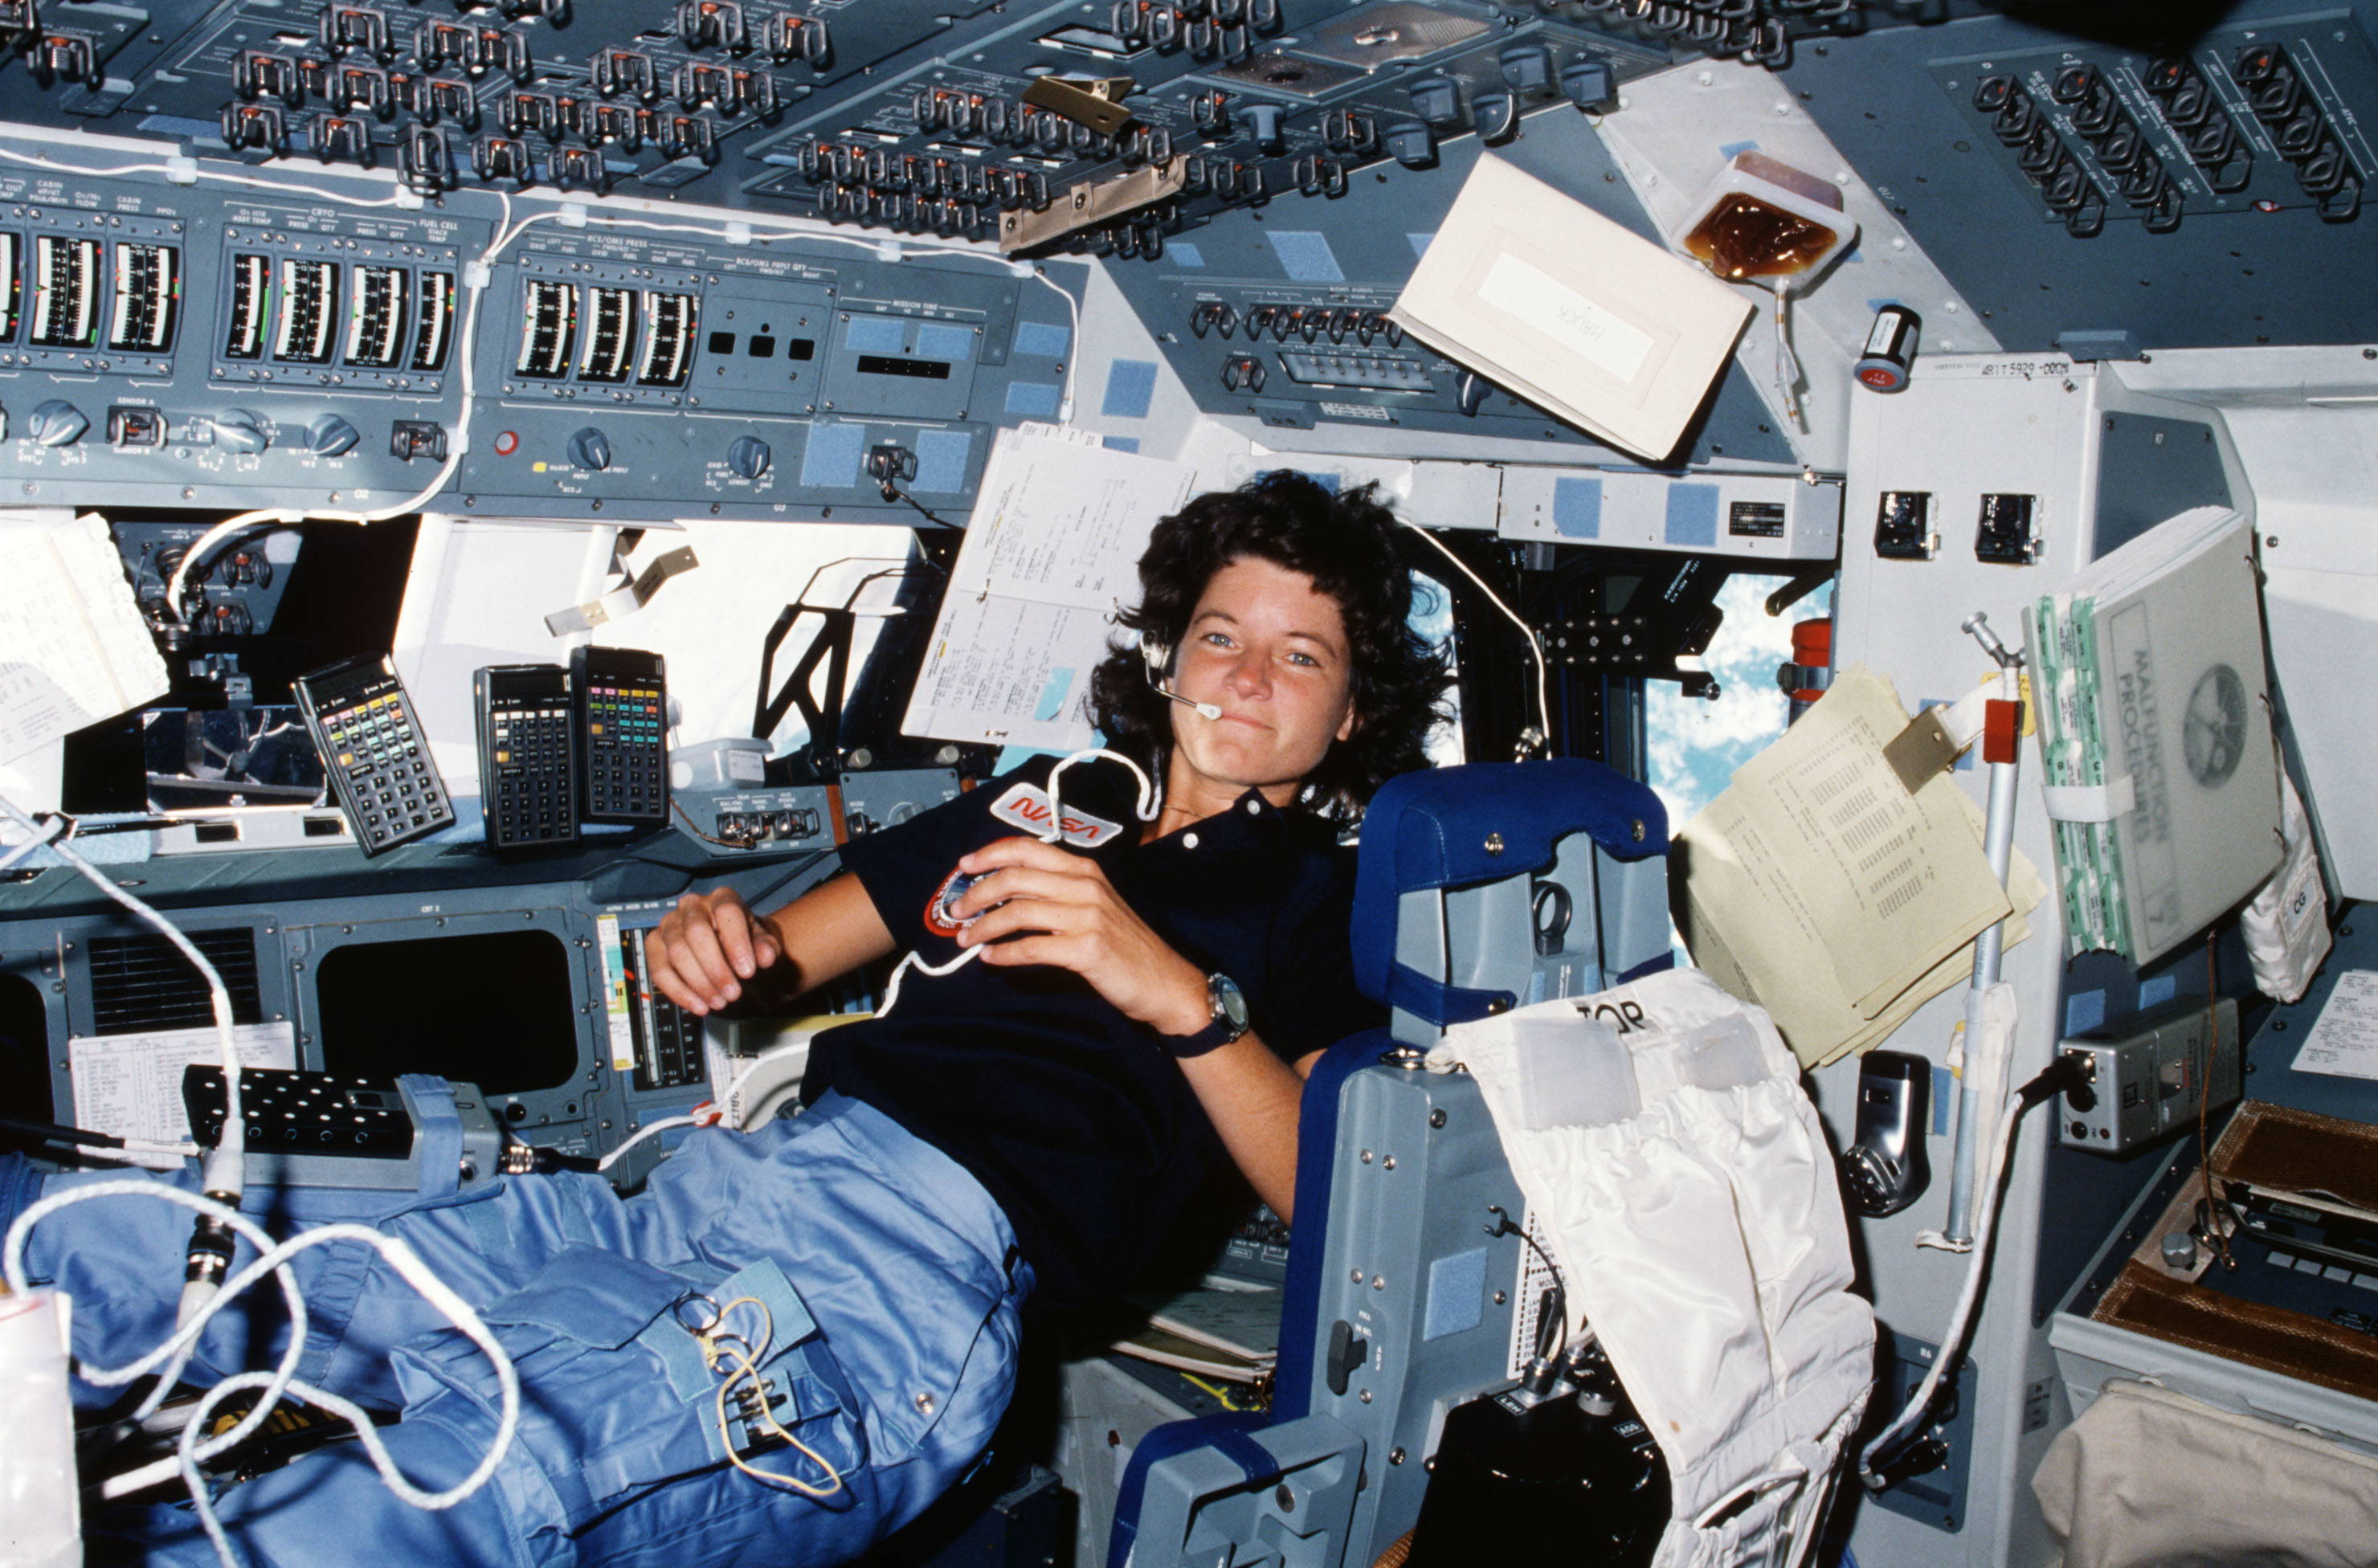 Before Sally Ride became the first American woman in space, the debate over opening the astronaut corps to women reinvigorated debates among feminists about women's equality with (vs. differences from) men. Photo by NASA, 1983.